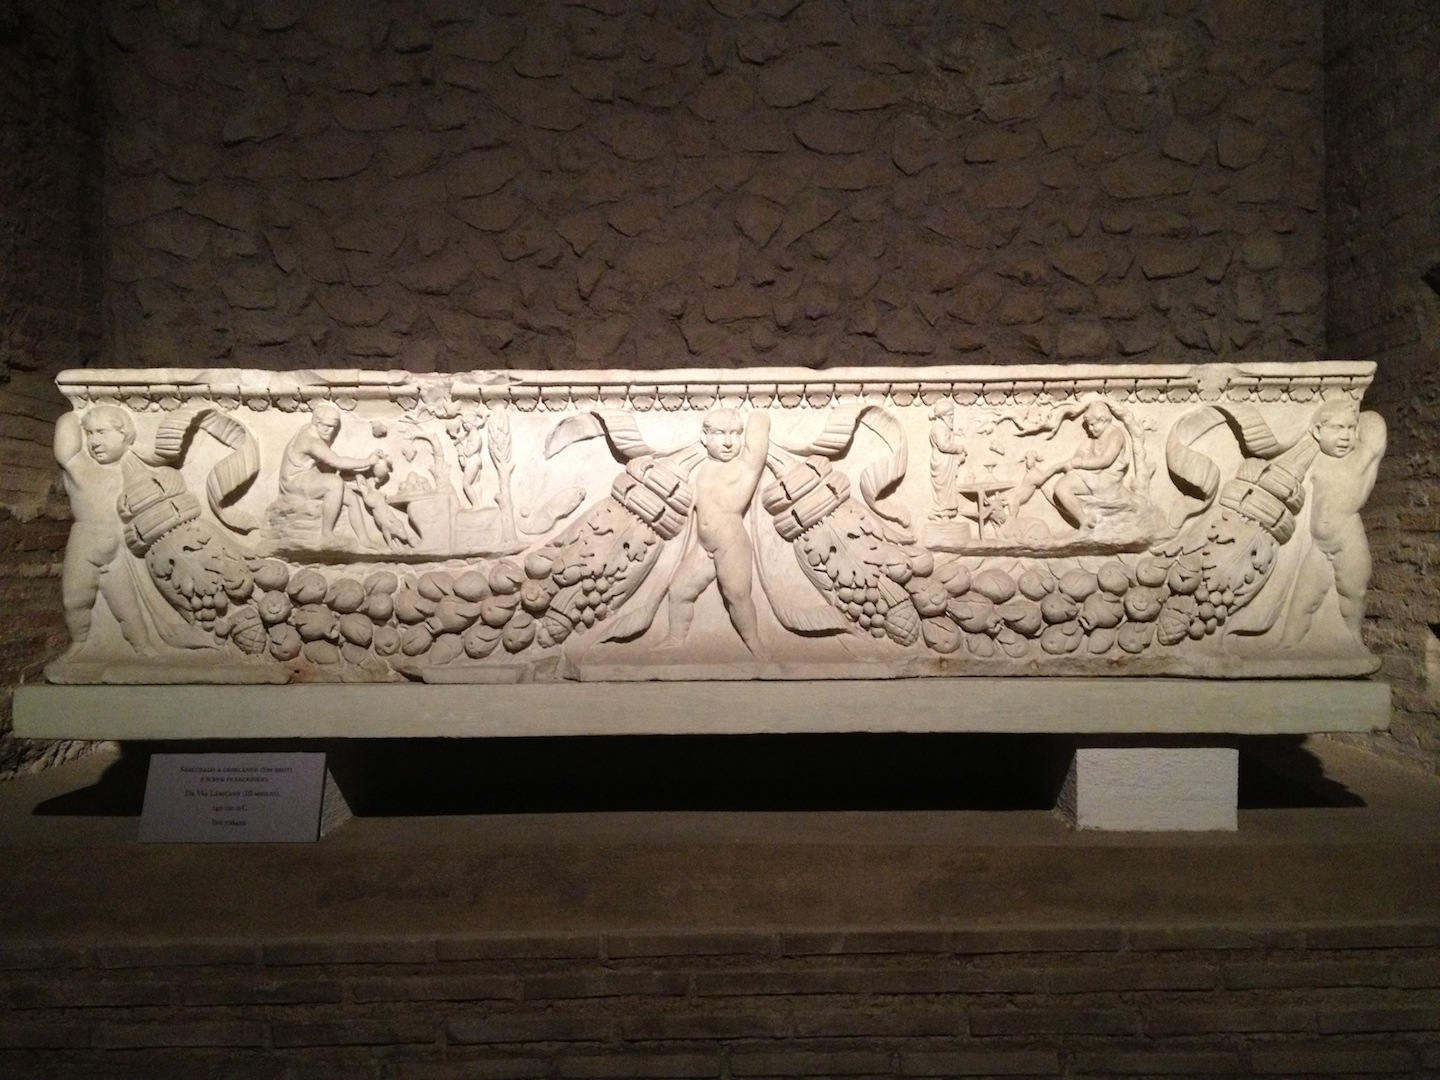 Sarcophagus with Garlands and Erotic Cherubs and Depictions of Animal Sacrifice  from Da Via Labicana 140-150 AD Rome